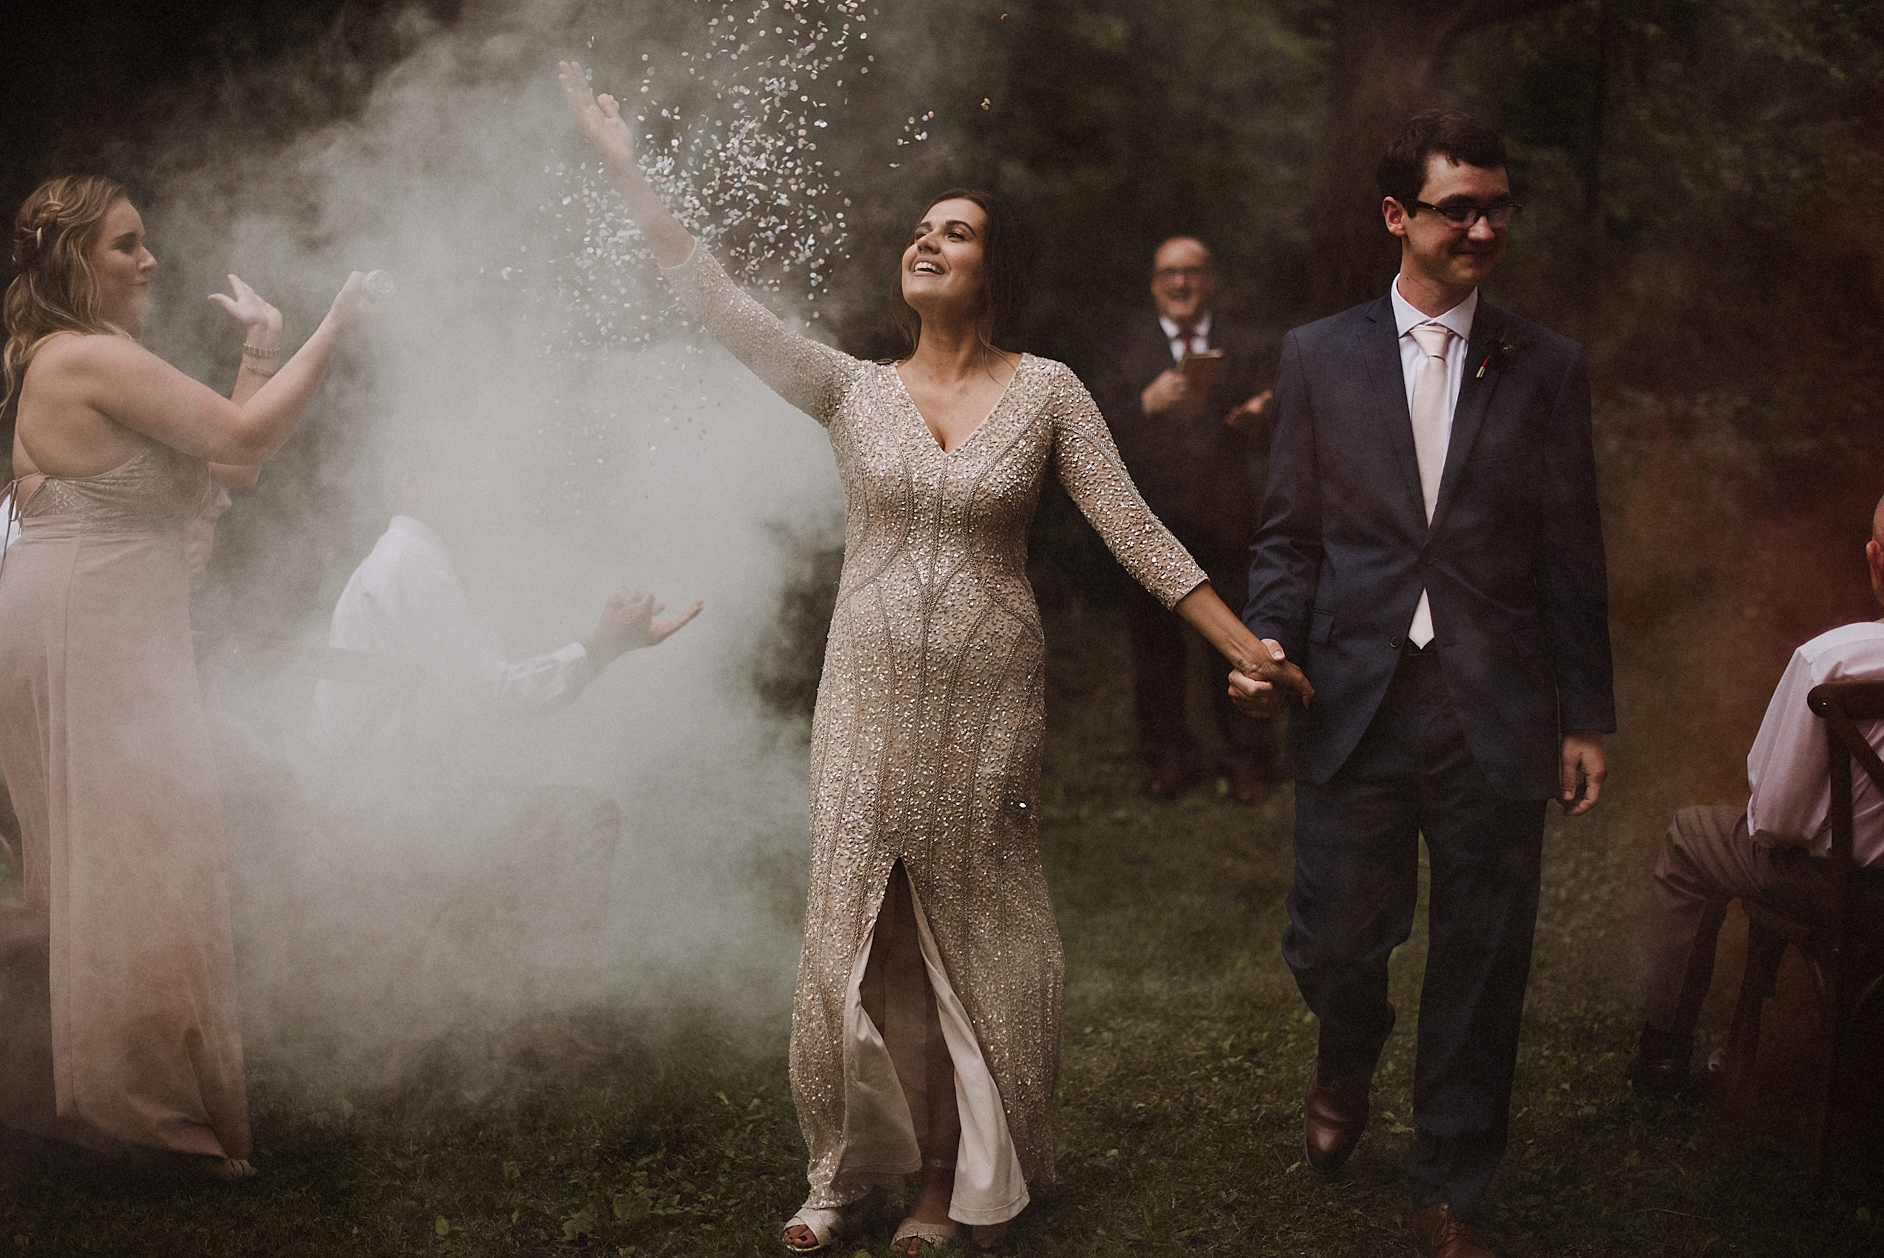 Elopement_Co_Michigan_Wedding-98